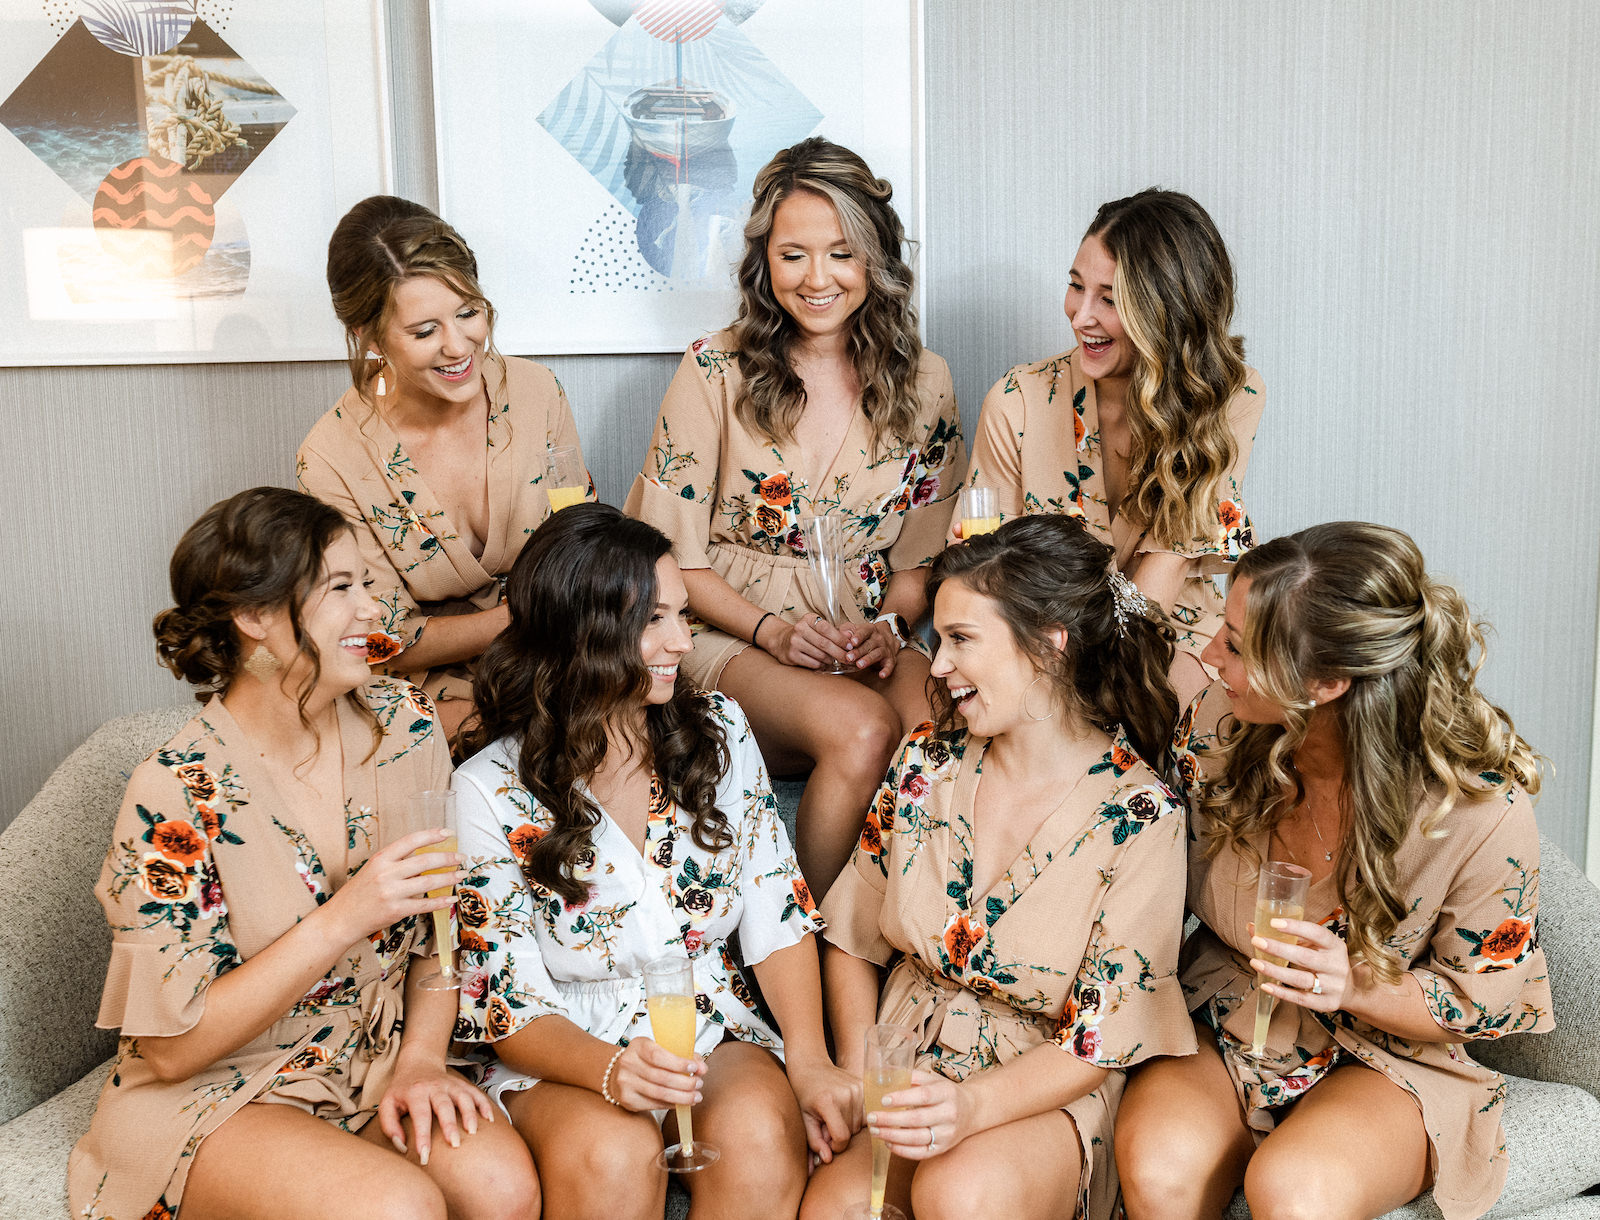 Bride and Bridesmaids Getting Ready in Champagne and White Floral Robes with Bottle of Champagne Bubbly | Dewitt for Love Photography